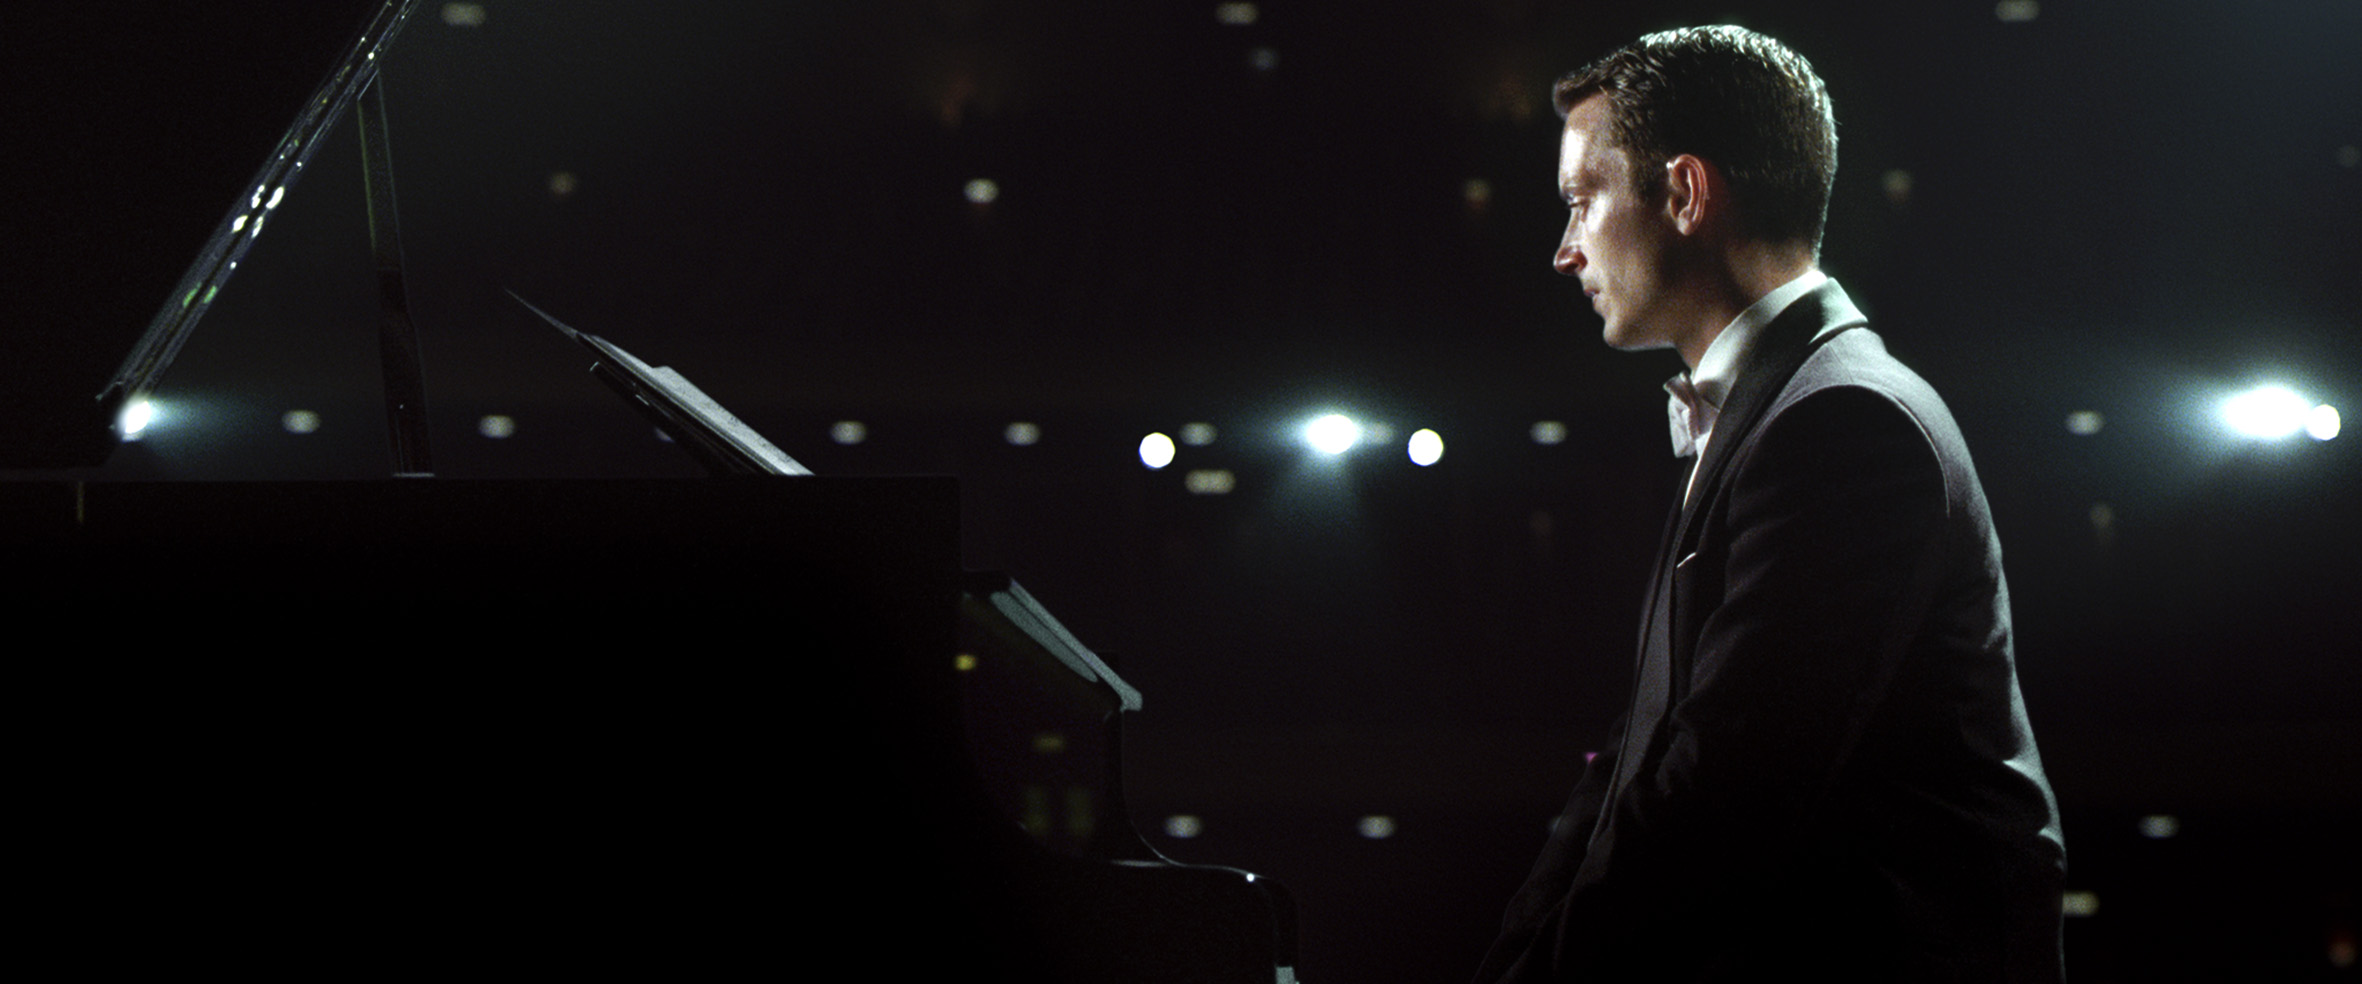 Grand Piano-Official Poster Banner PHOTOS-19MARCO2014-03